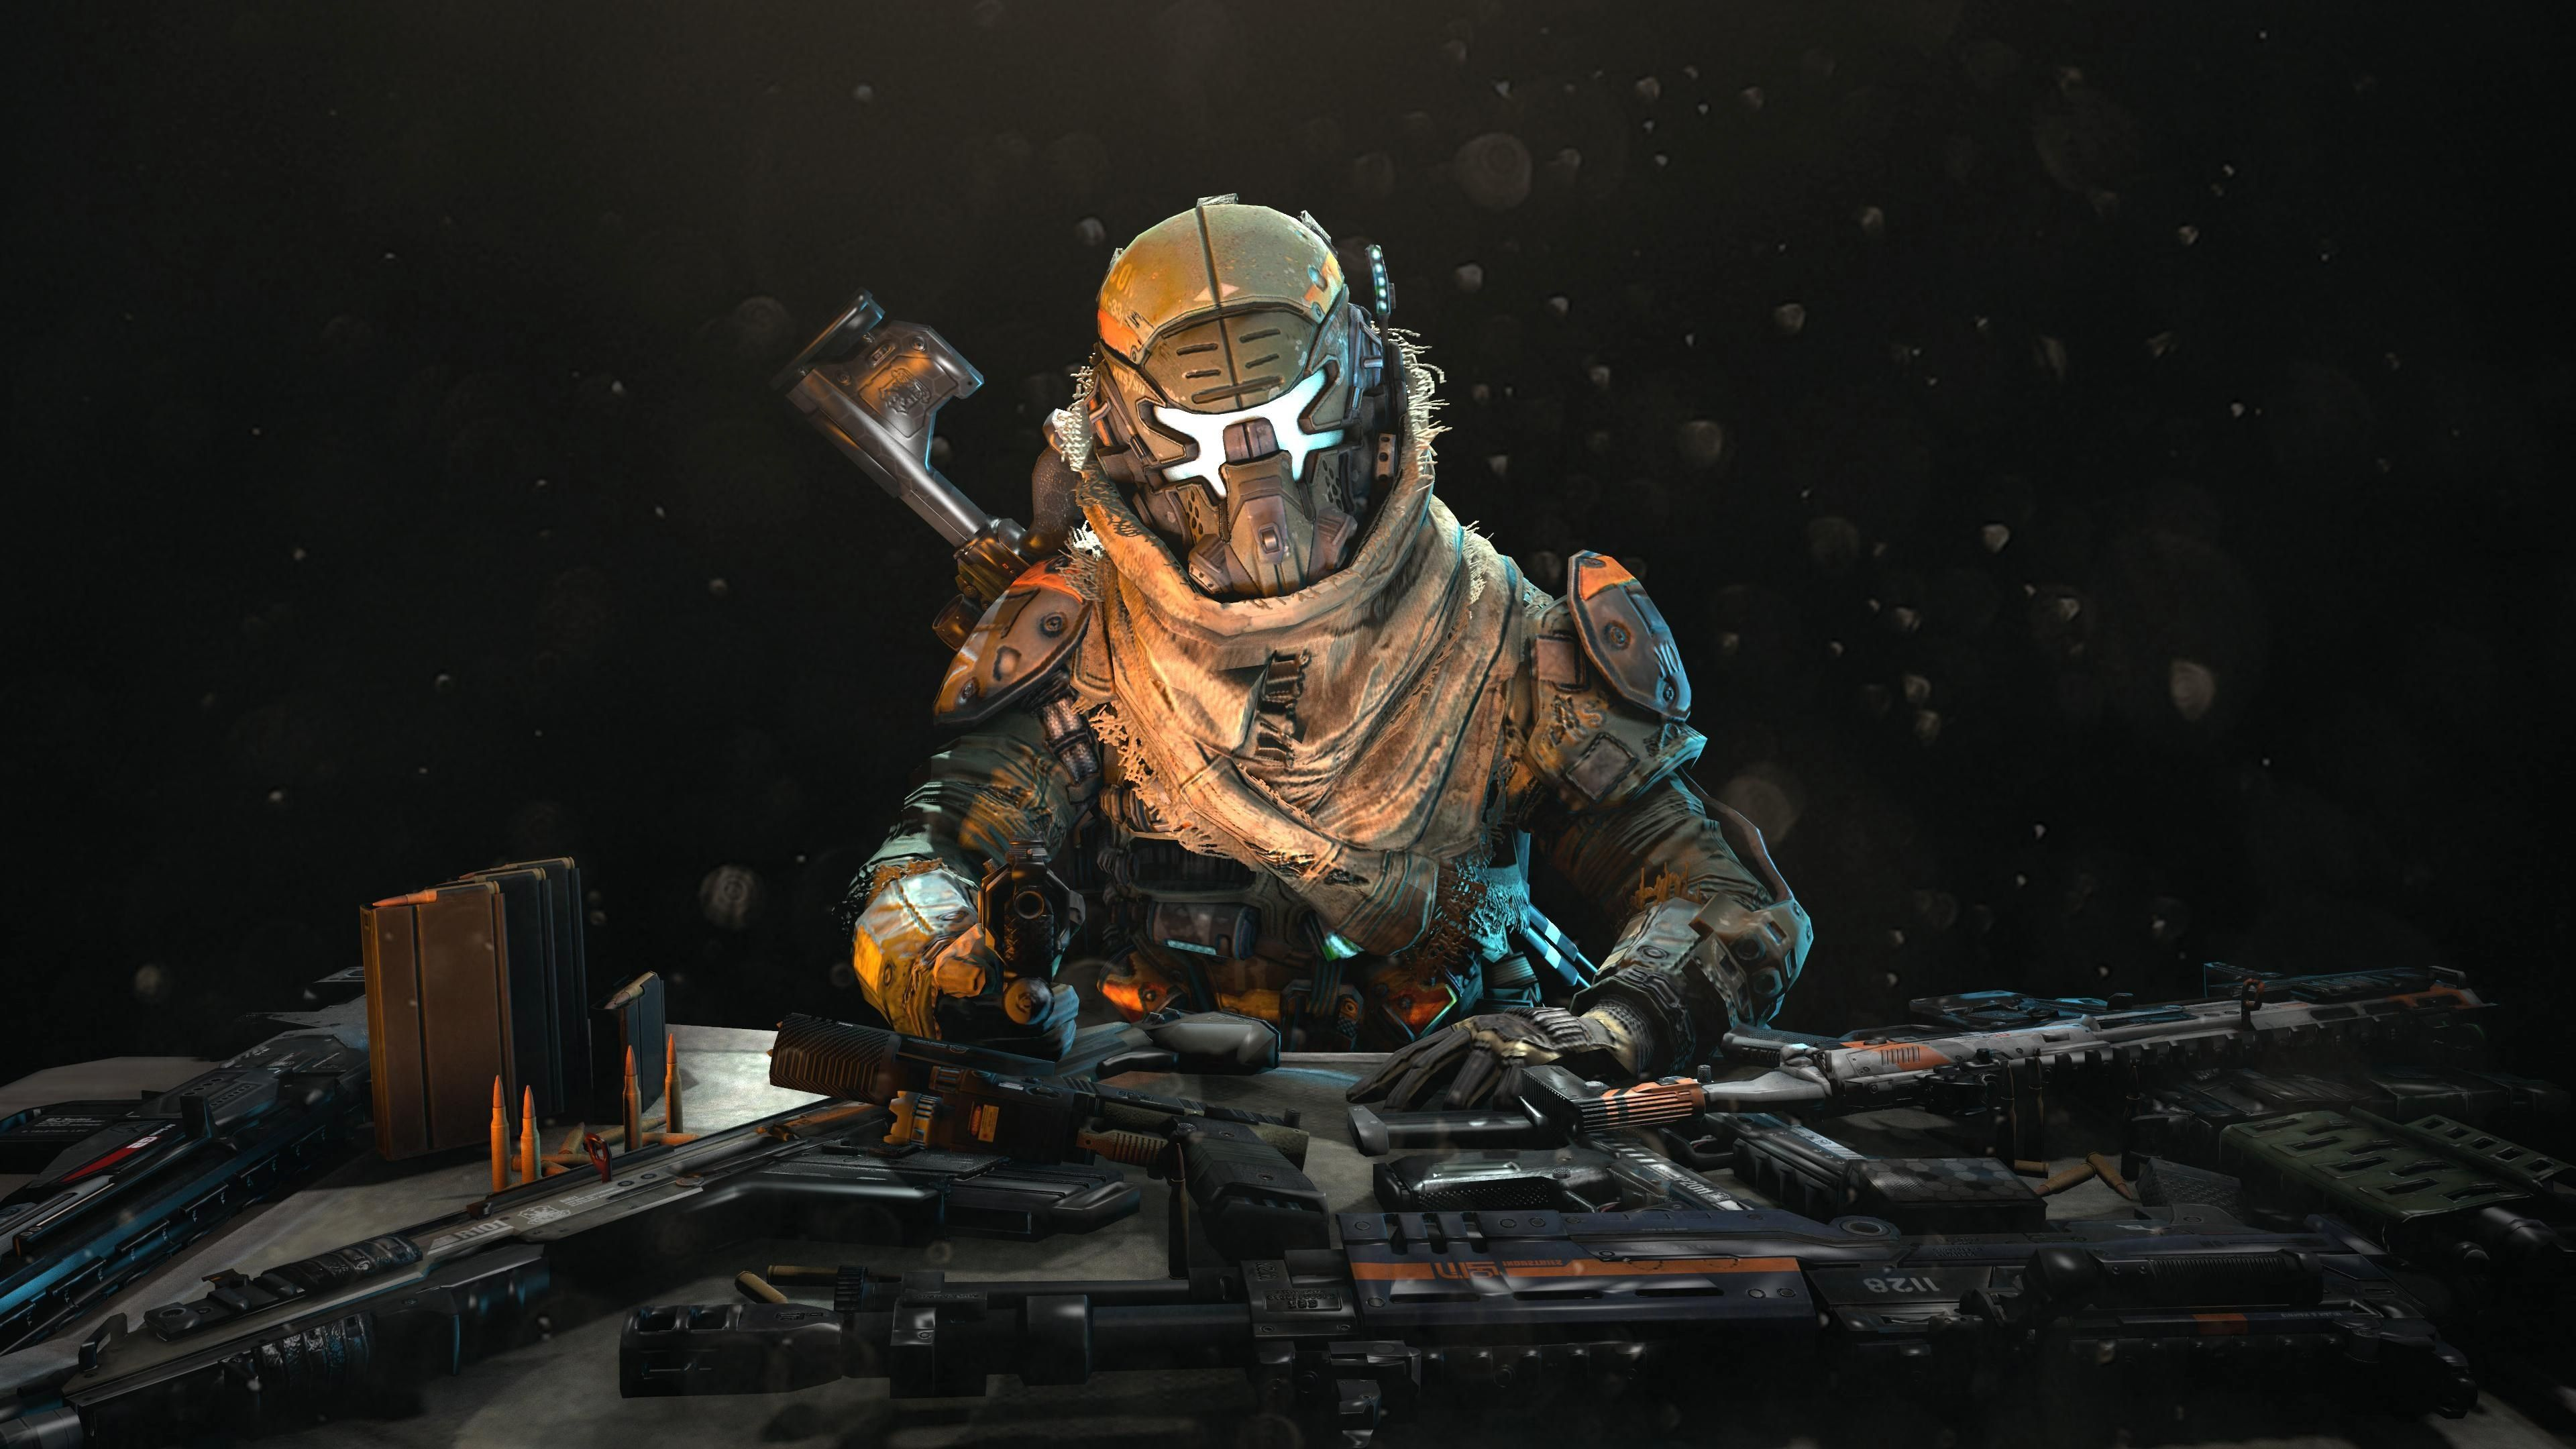 Titanfall 2 Wallpapers - Top Free Titanfall 2 Backgrounds ...